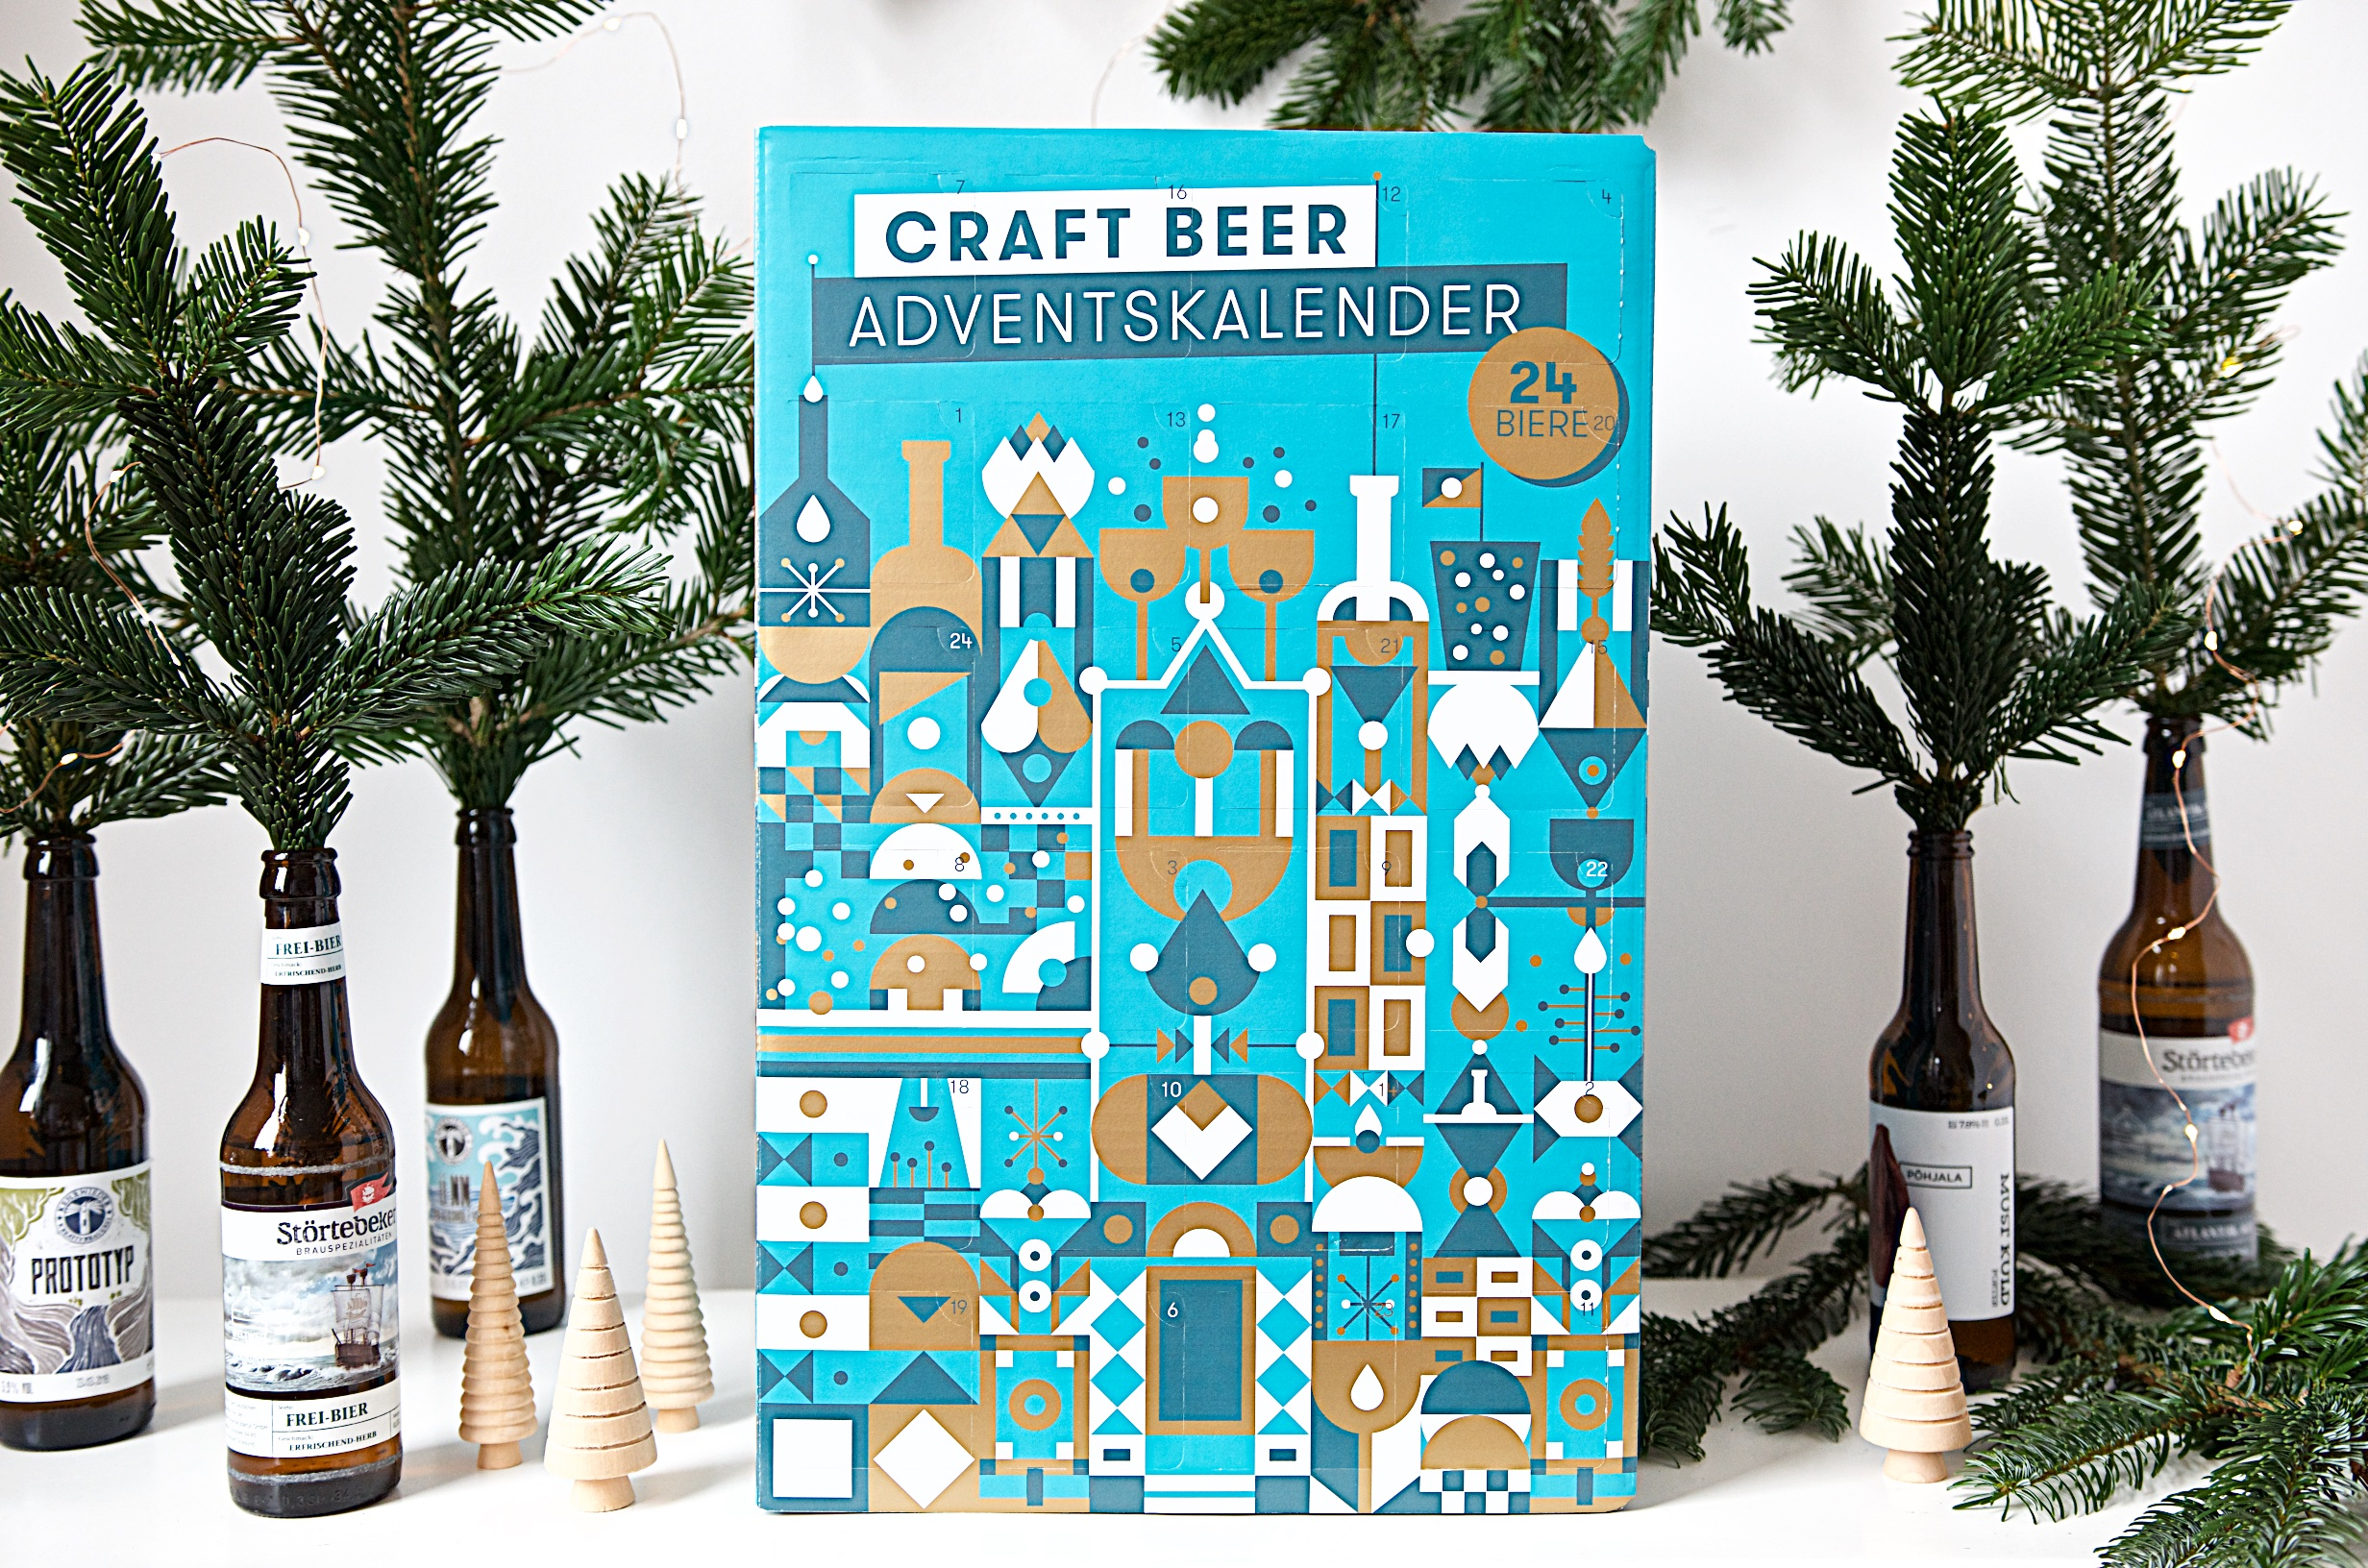 craft beer adventskalender von beyond beer perfekt f r m nner und bierliebhaber pinkepank. Black Bedroom Furniture Sets. Home Design Ideas